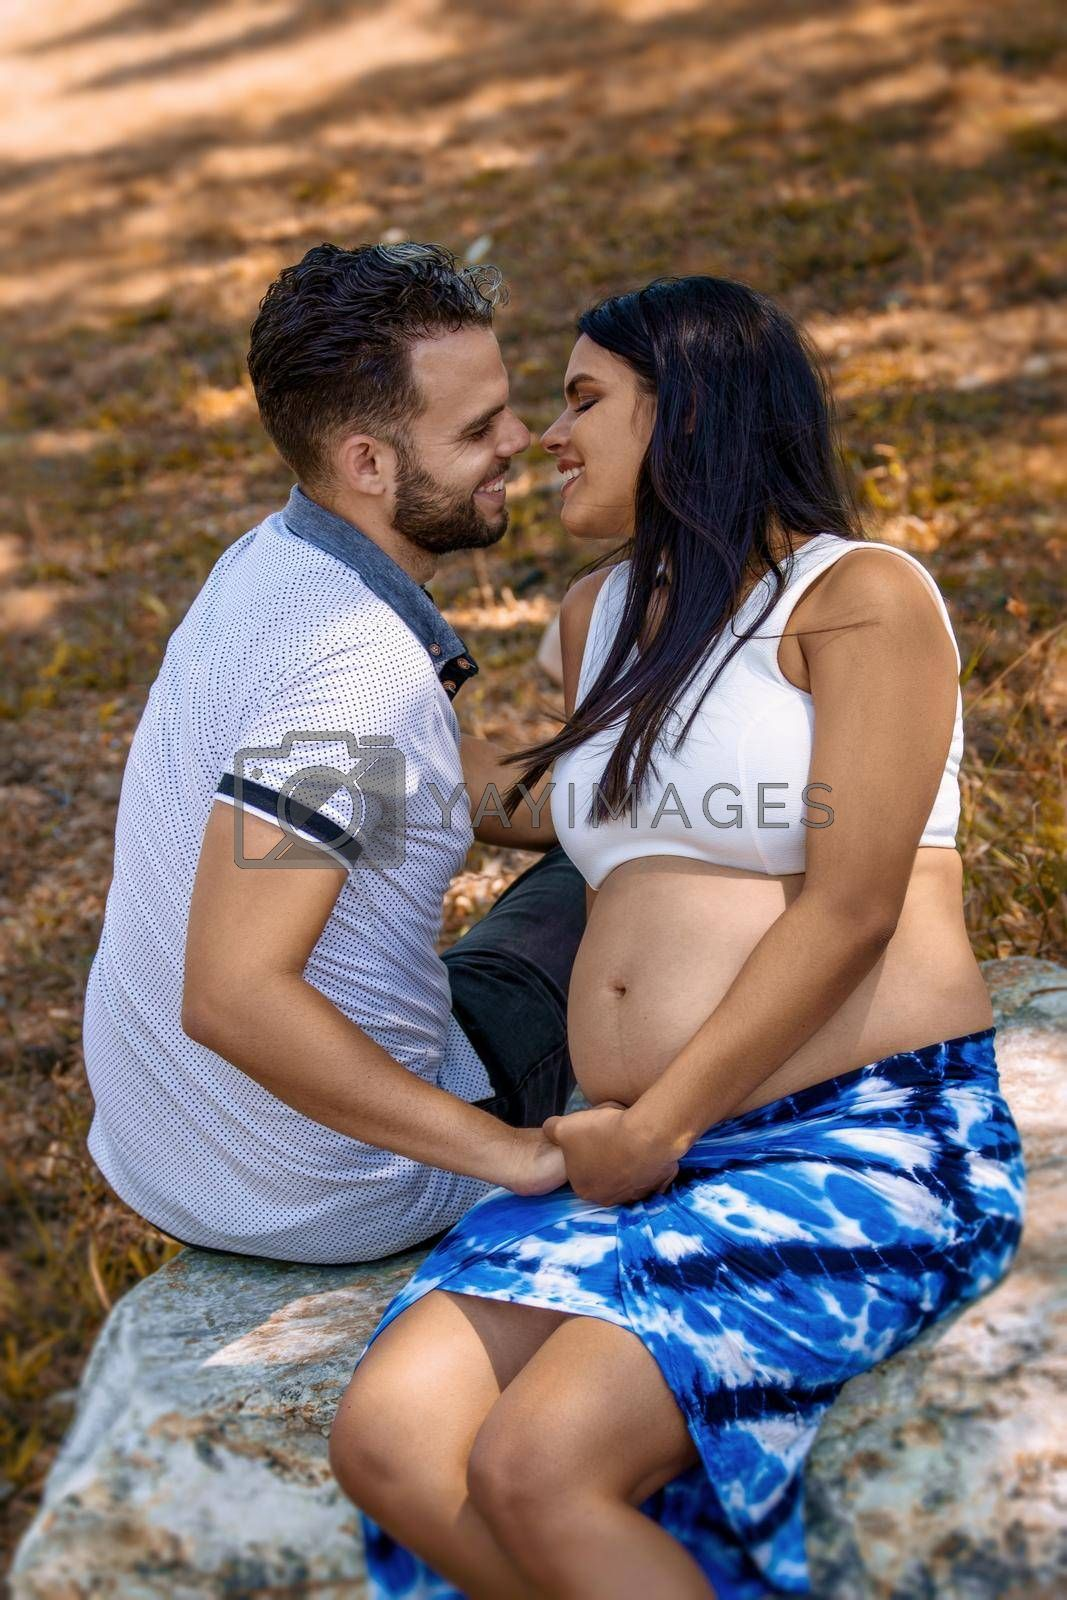 Royalty free image of Couple expecting a child by jrivalta